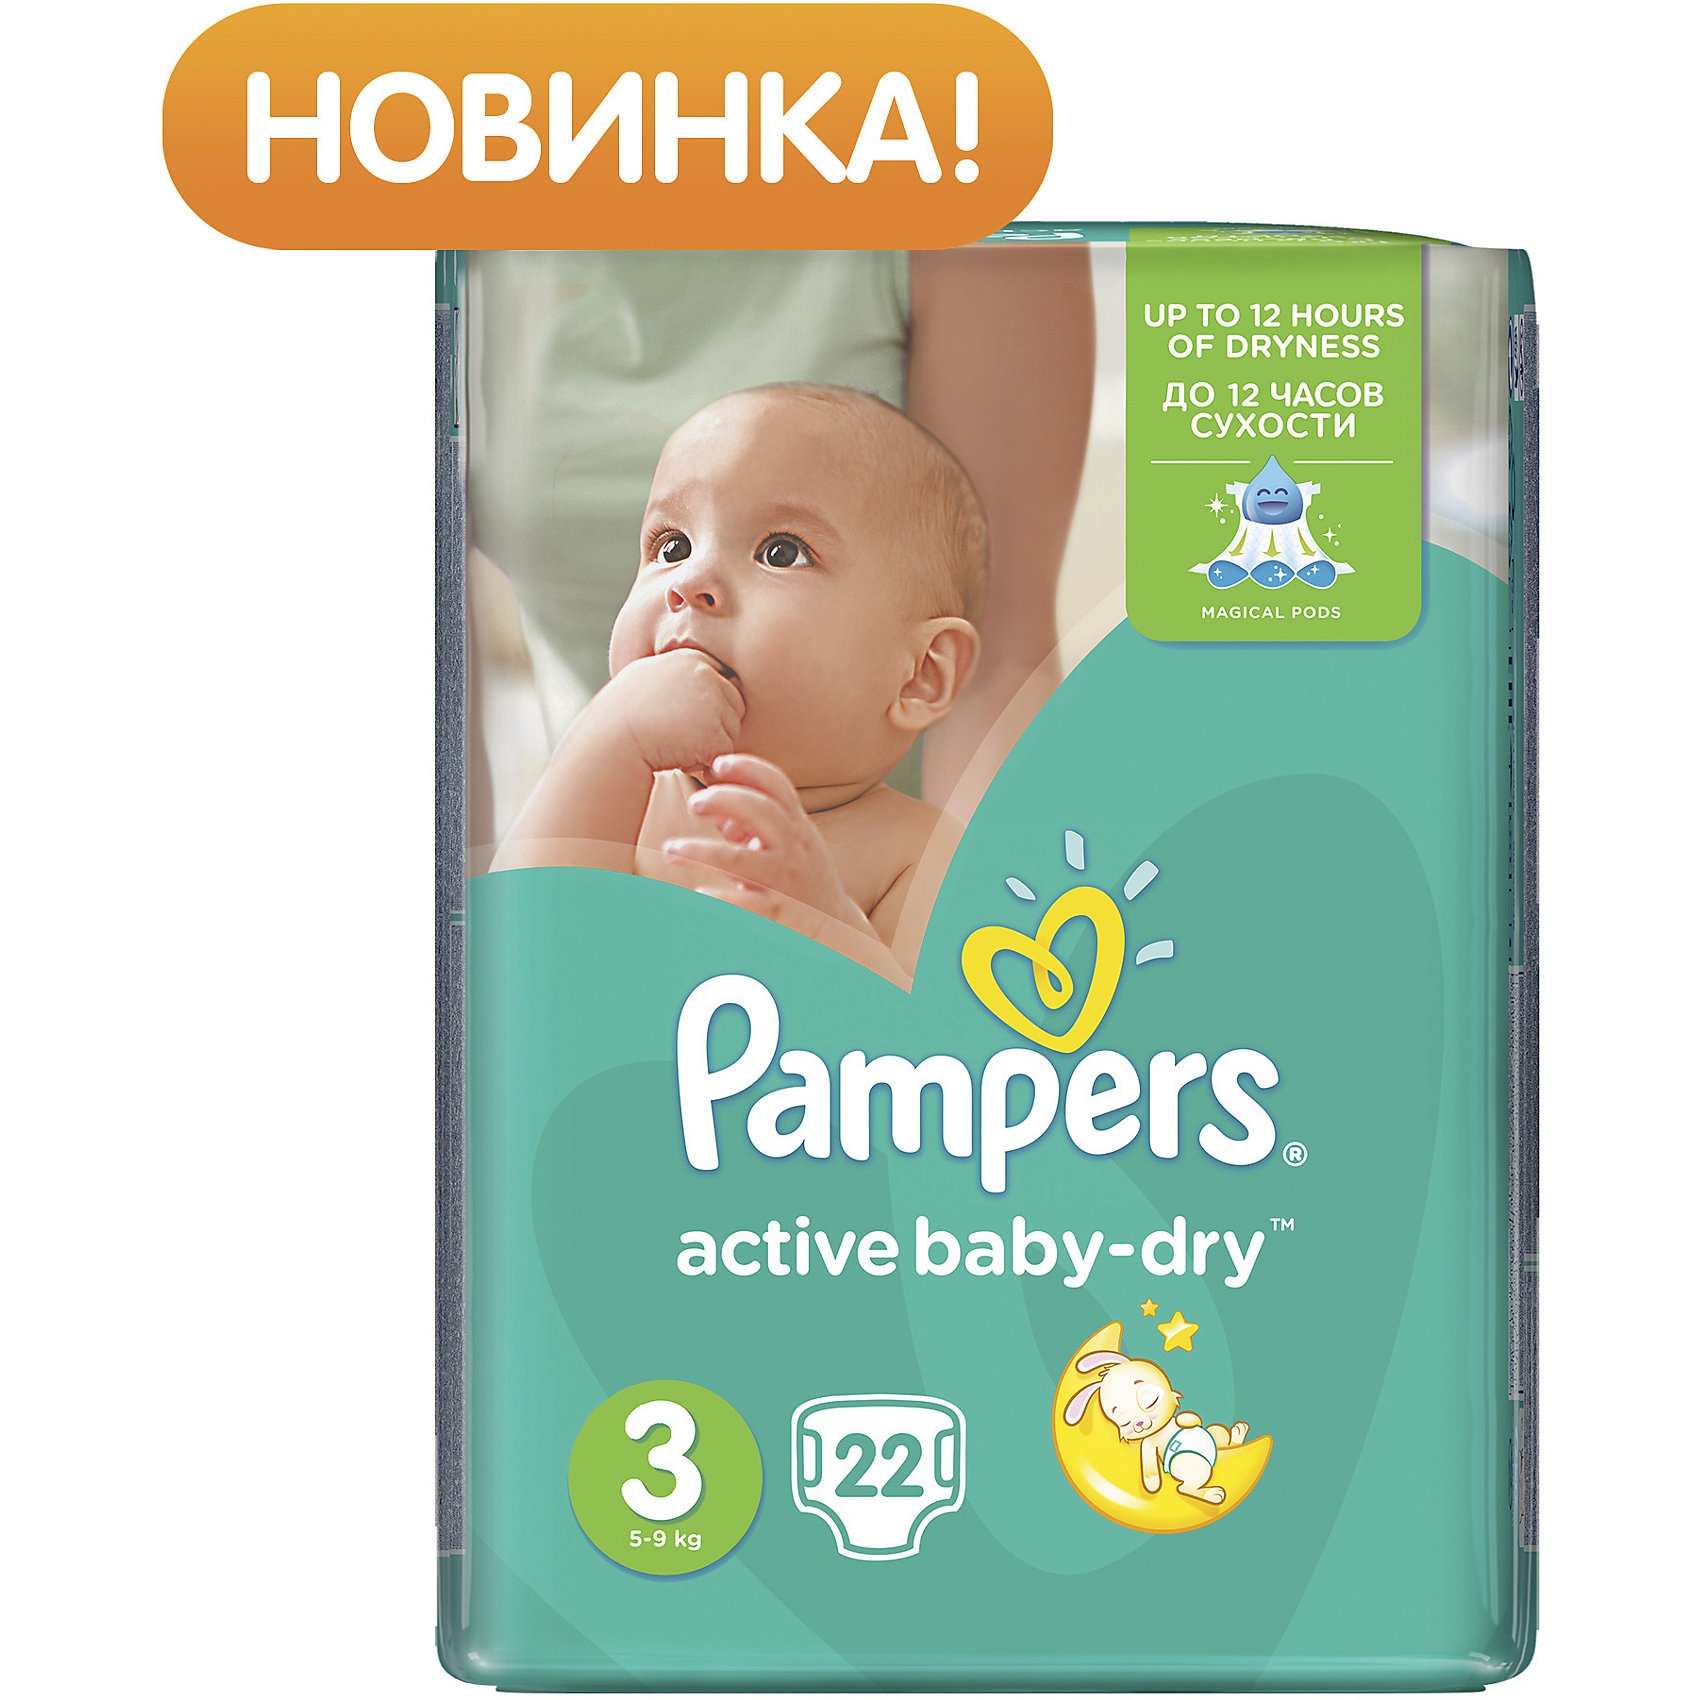 Подгузники Pampers Active Baby-Dry, 5-9 кг, 3 размер, 22 шт., Pampers